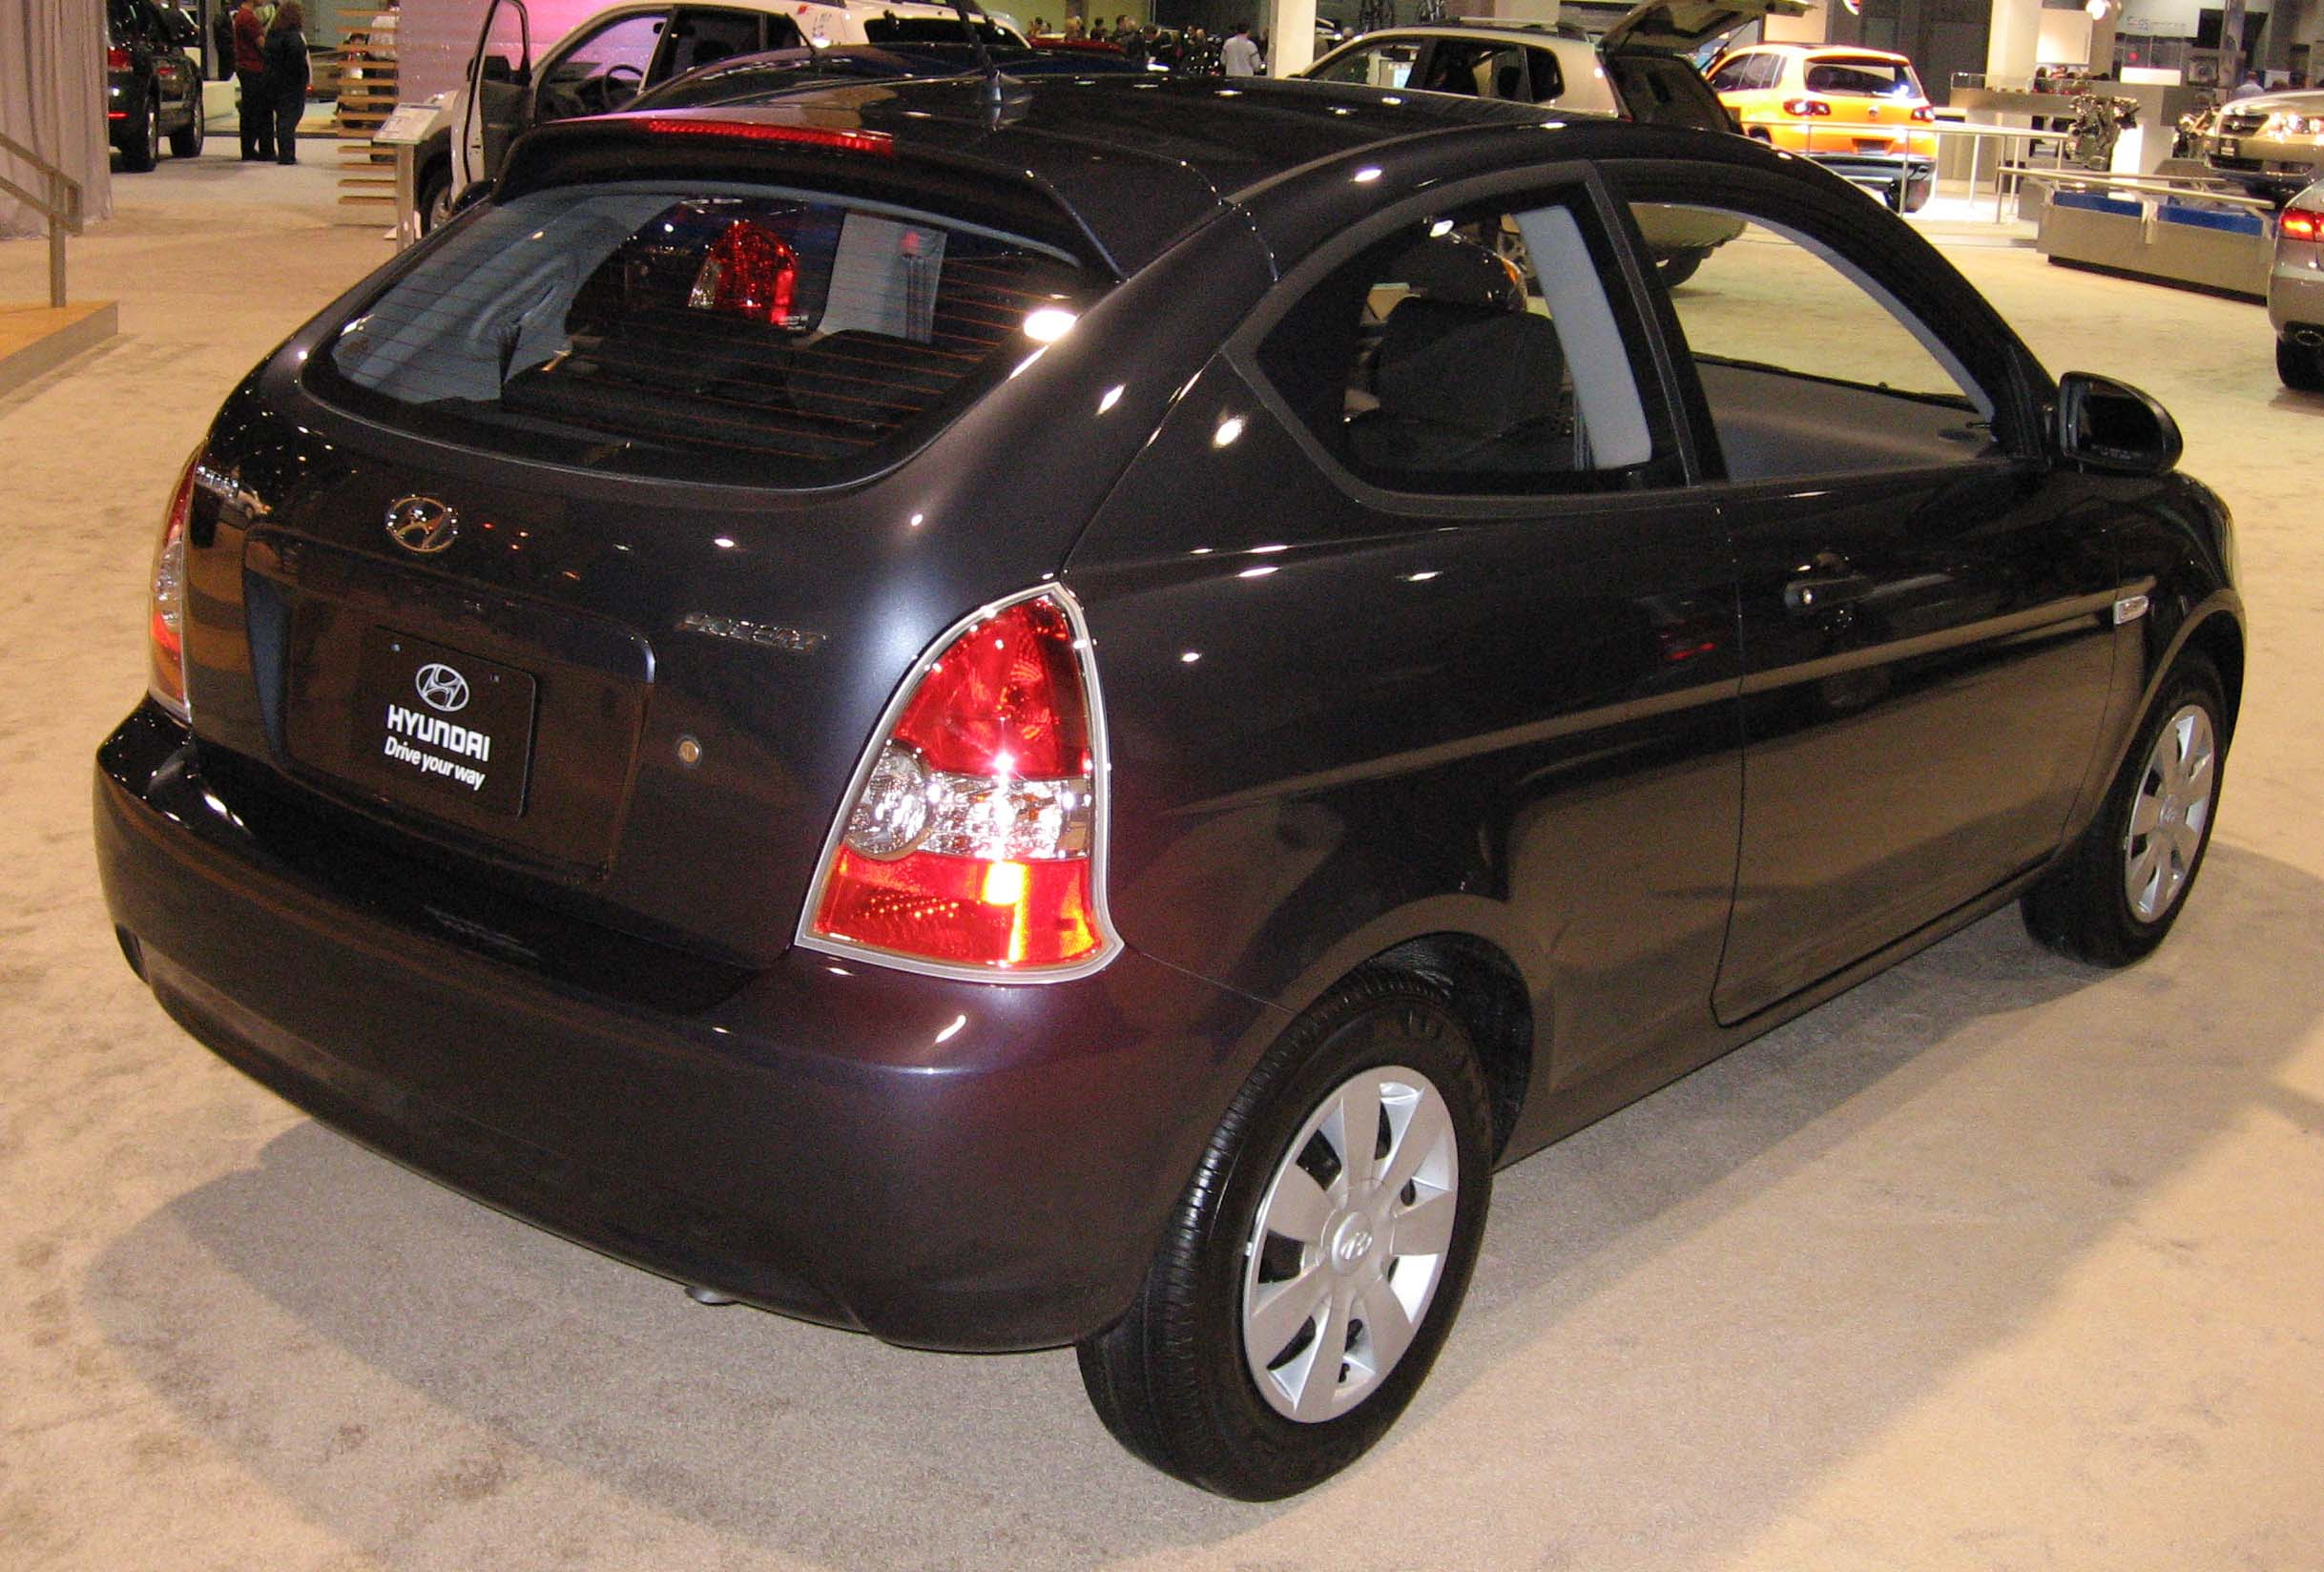 file 2007 hyundai accent hatchback wikimedia commons. Black Bedroom Furniture Sets. Home Design Ideas